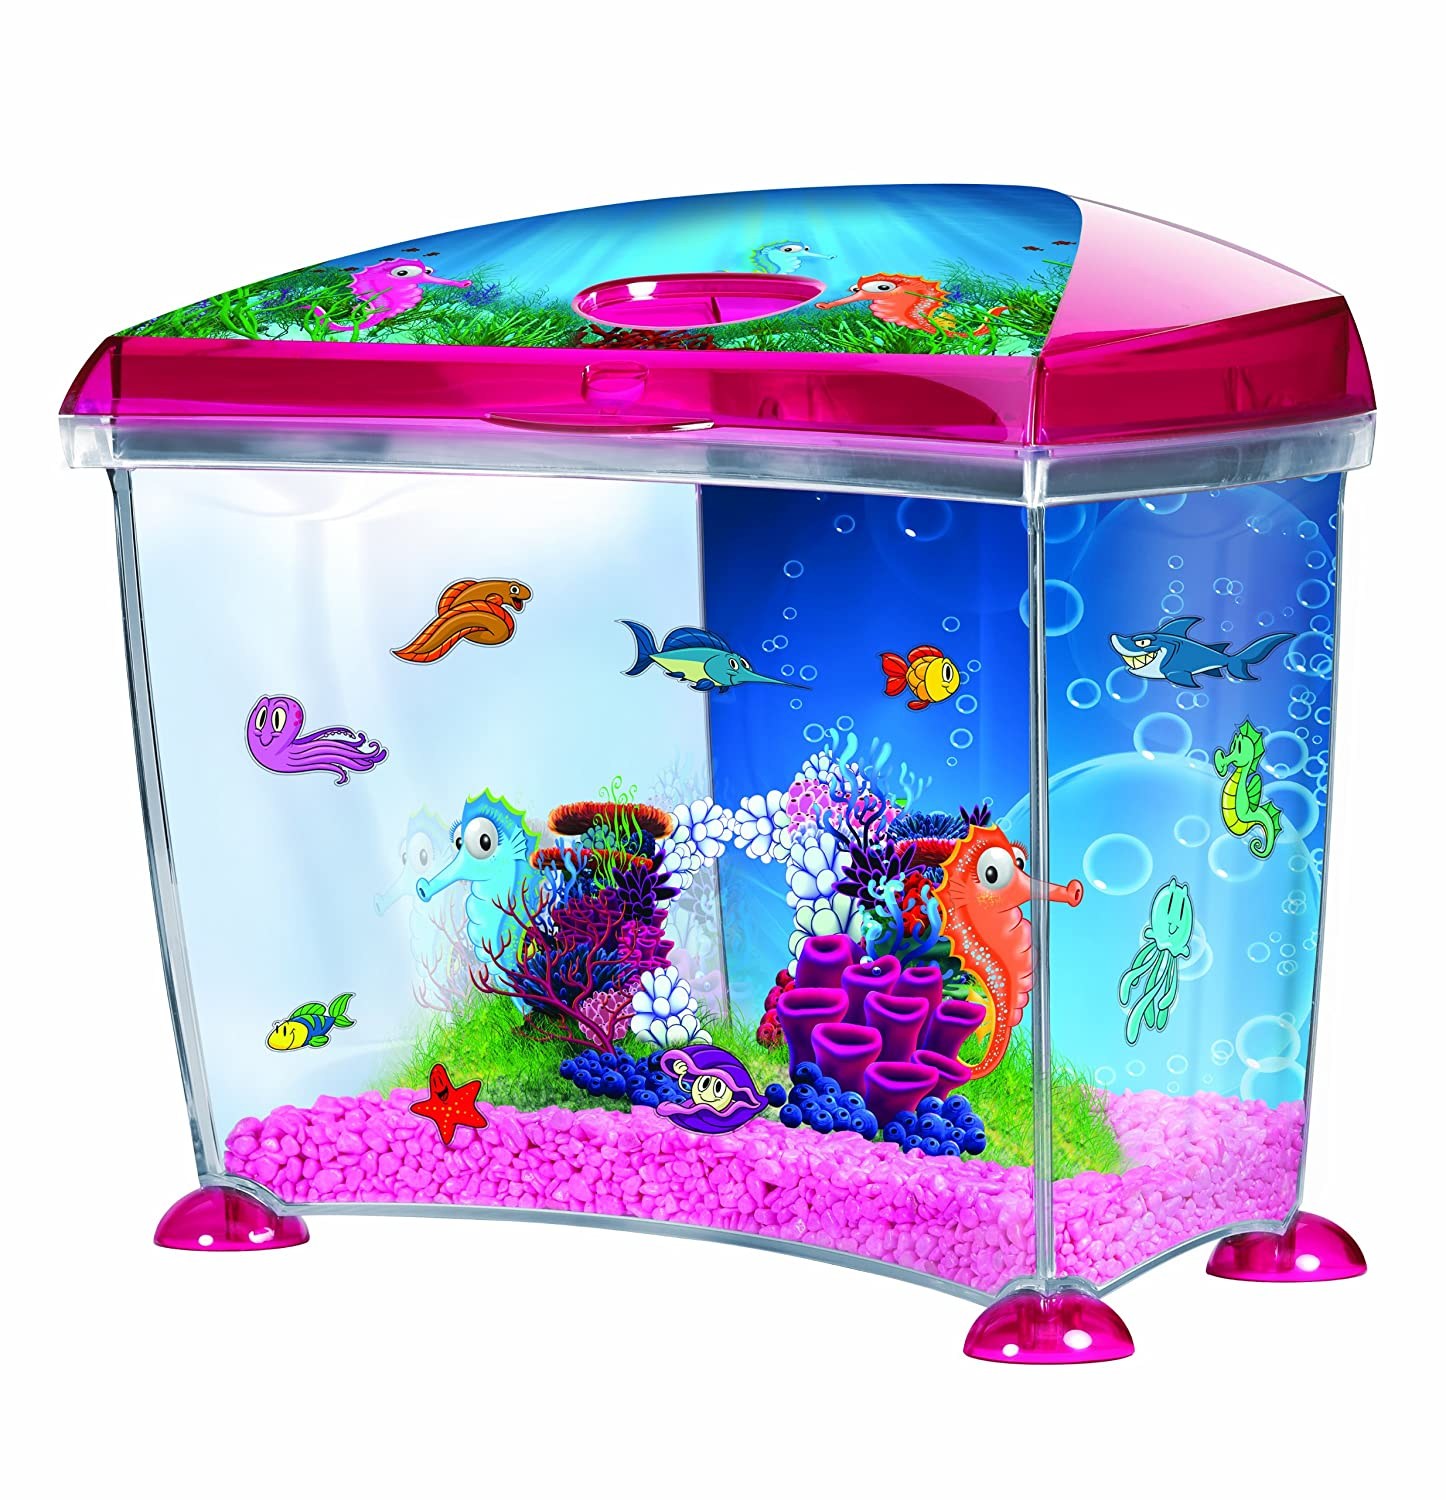 Aquarium fish tank starter kit - Marina Seahorse Fantasy Plastic Aquarium Kit 14 Litre Amazon Co Uk Pet Supplies